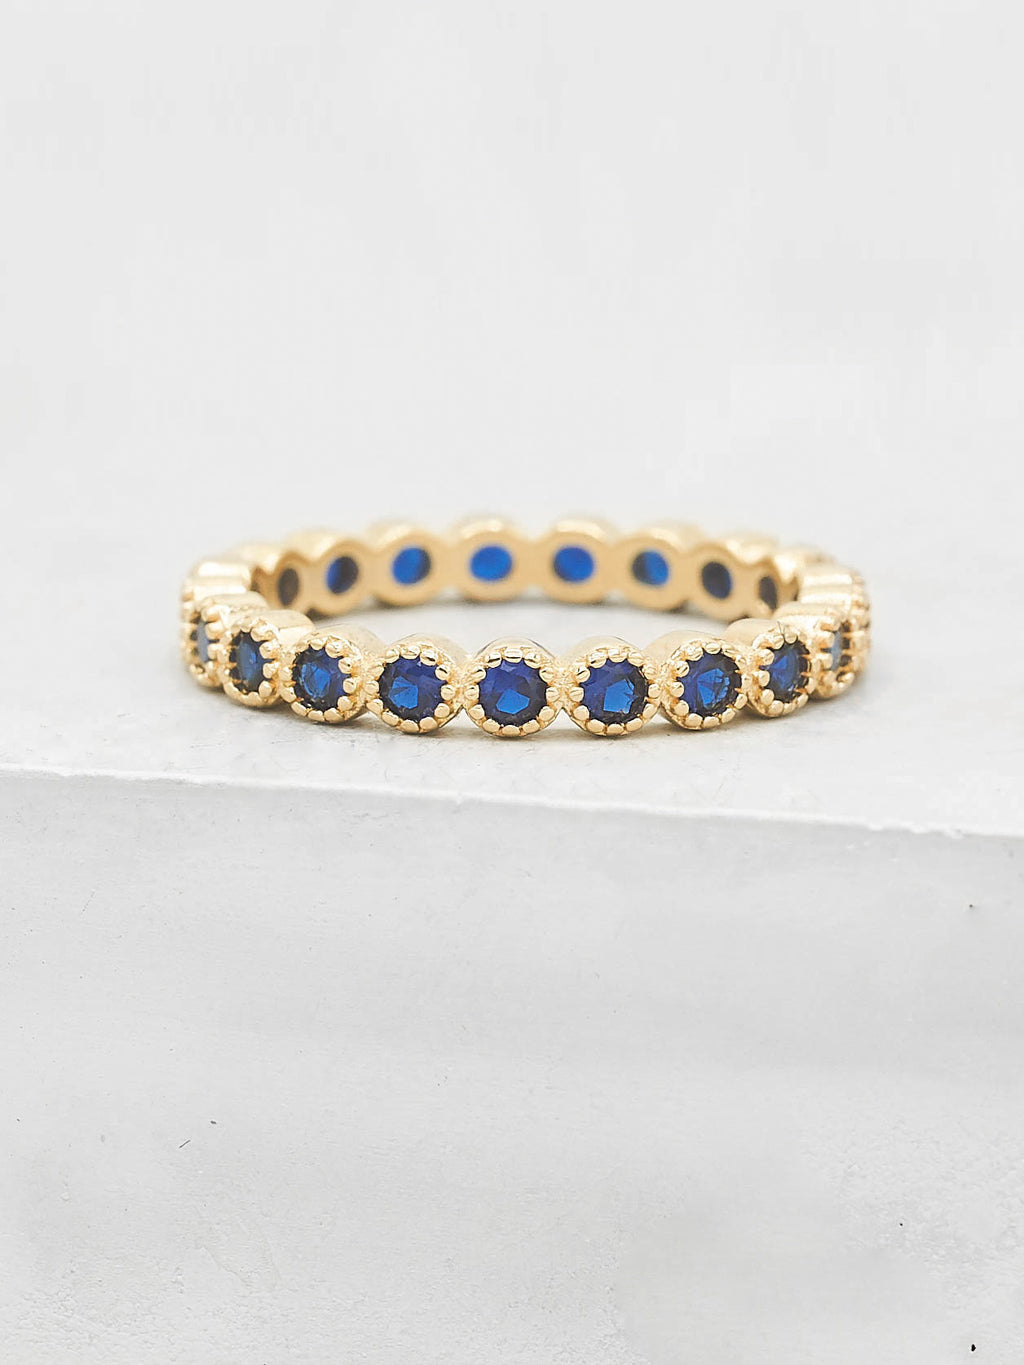 Bezel Set Eternity Ring with Round Blue Sapphire CZ by The Faint Hearted Jewelry